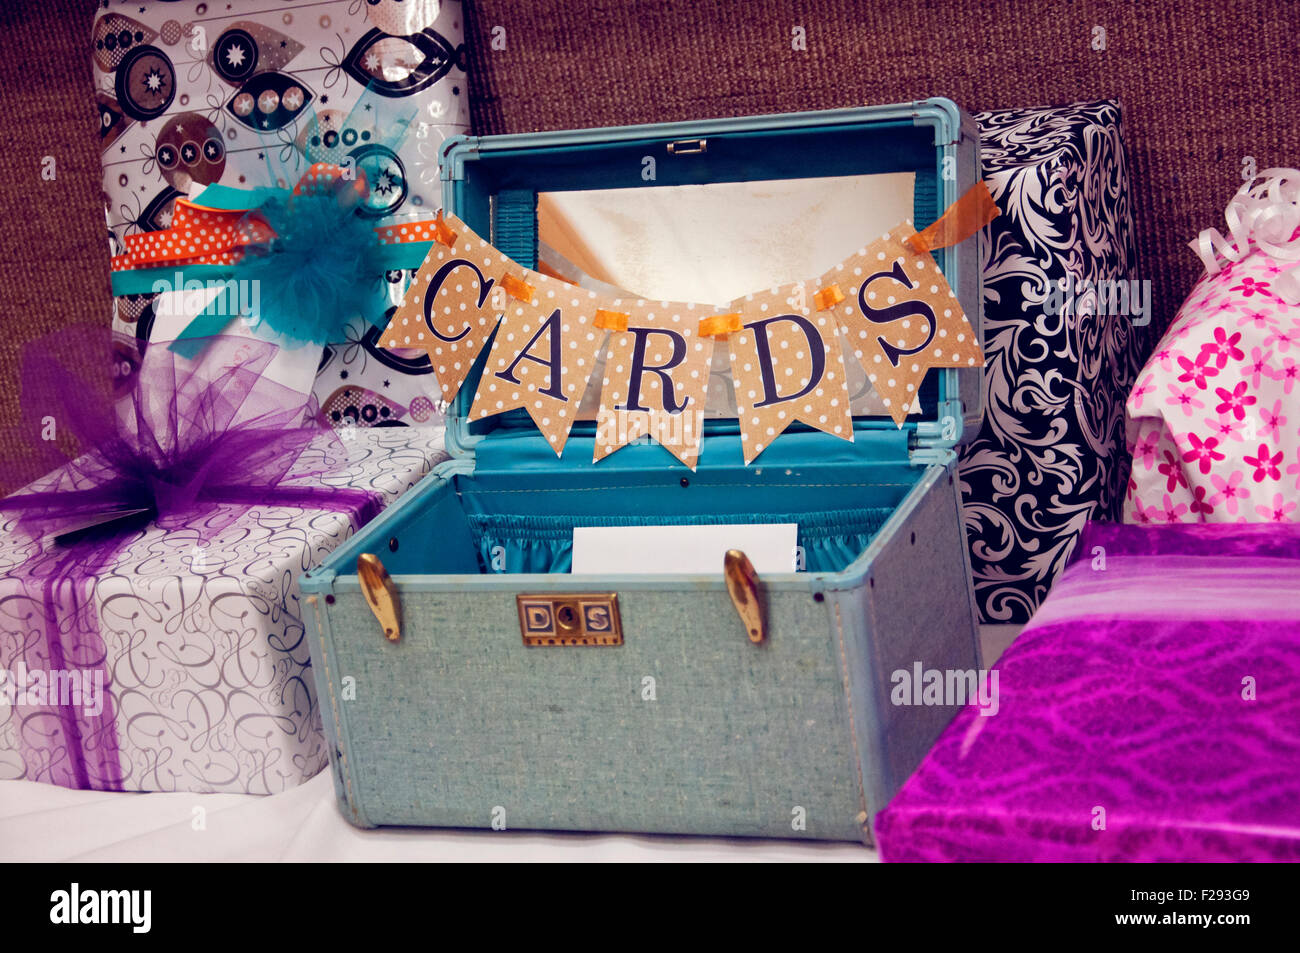 Gifts and Cards box - Stock Image